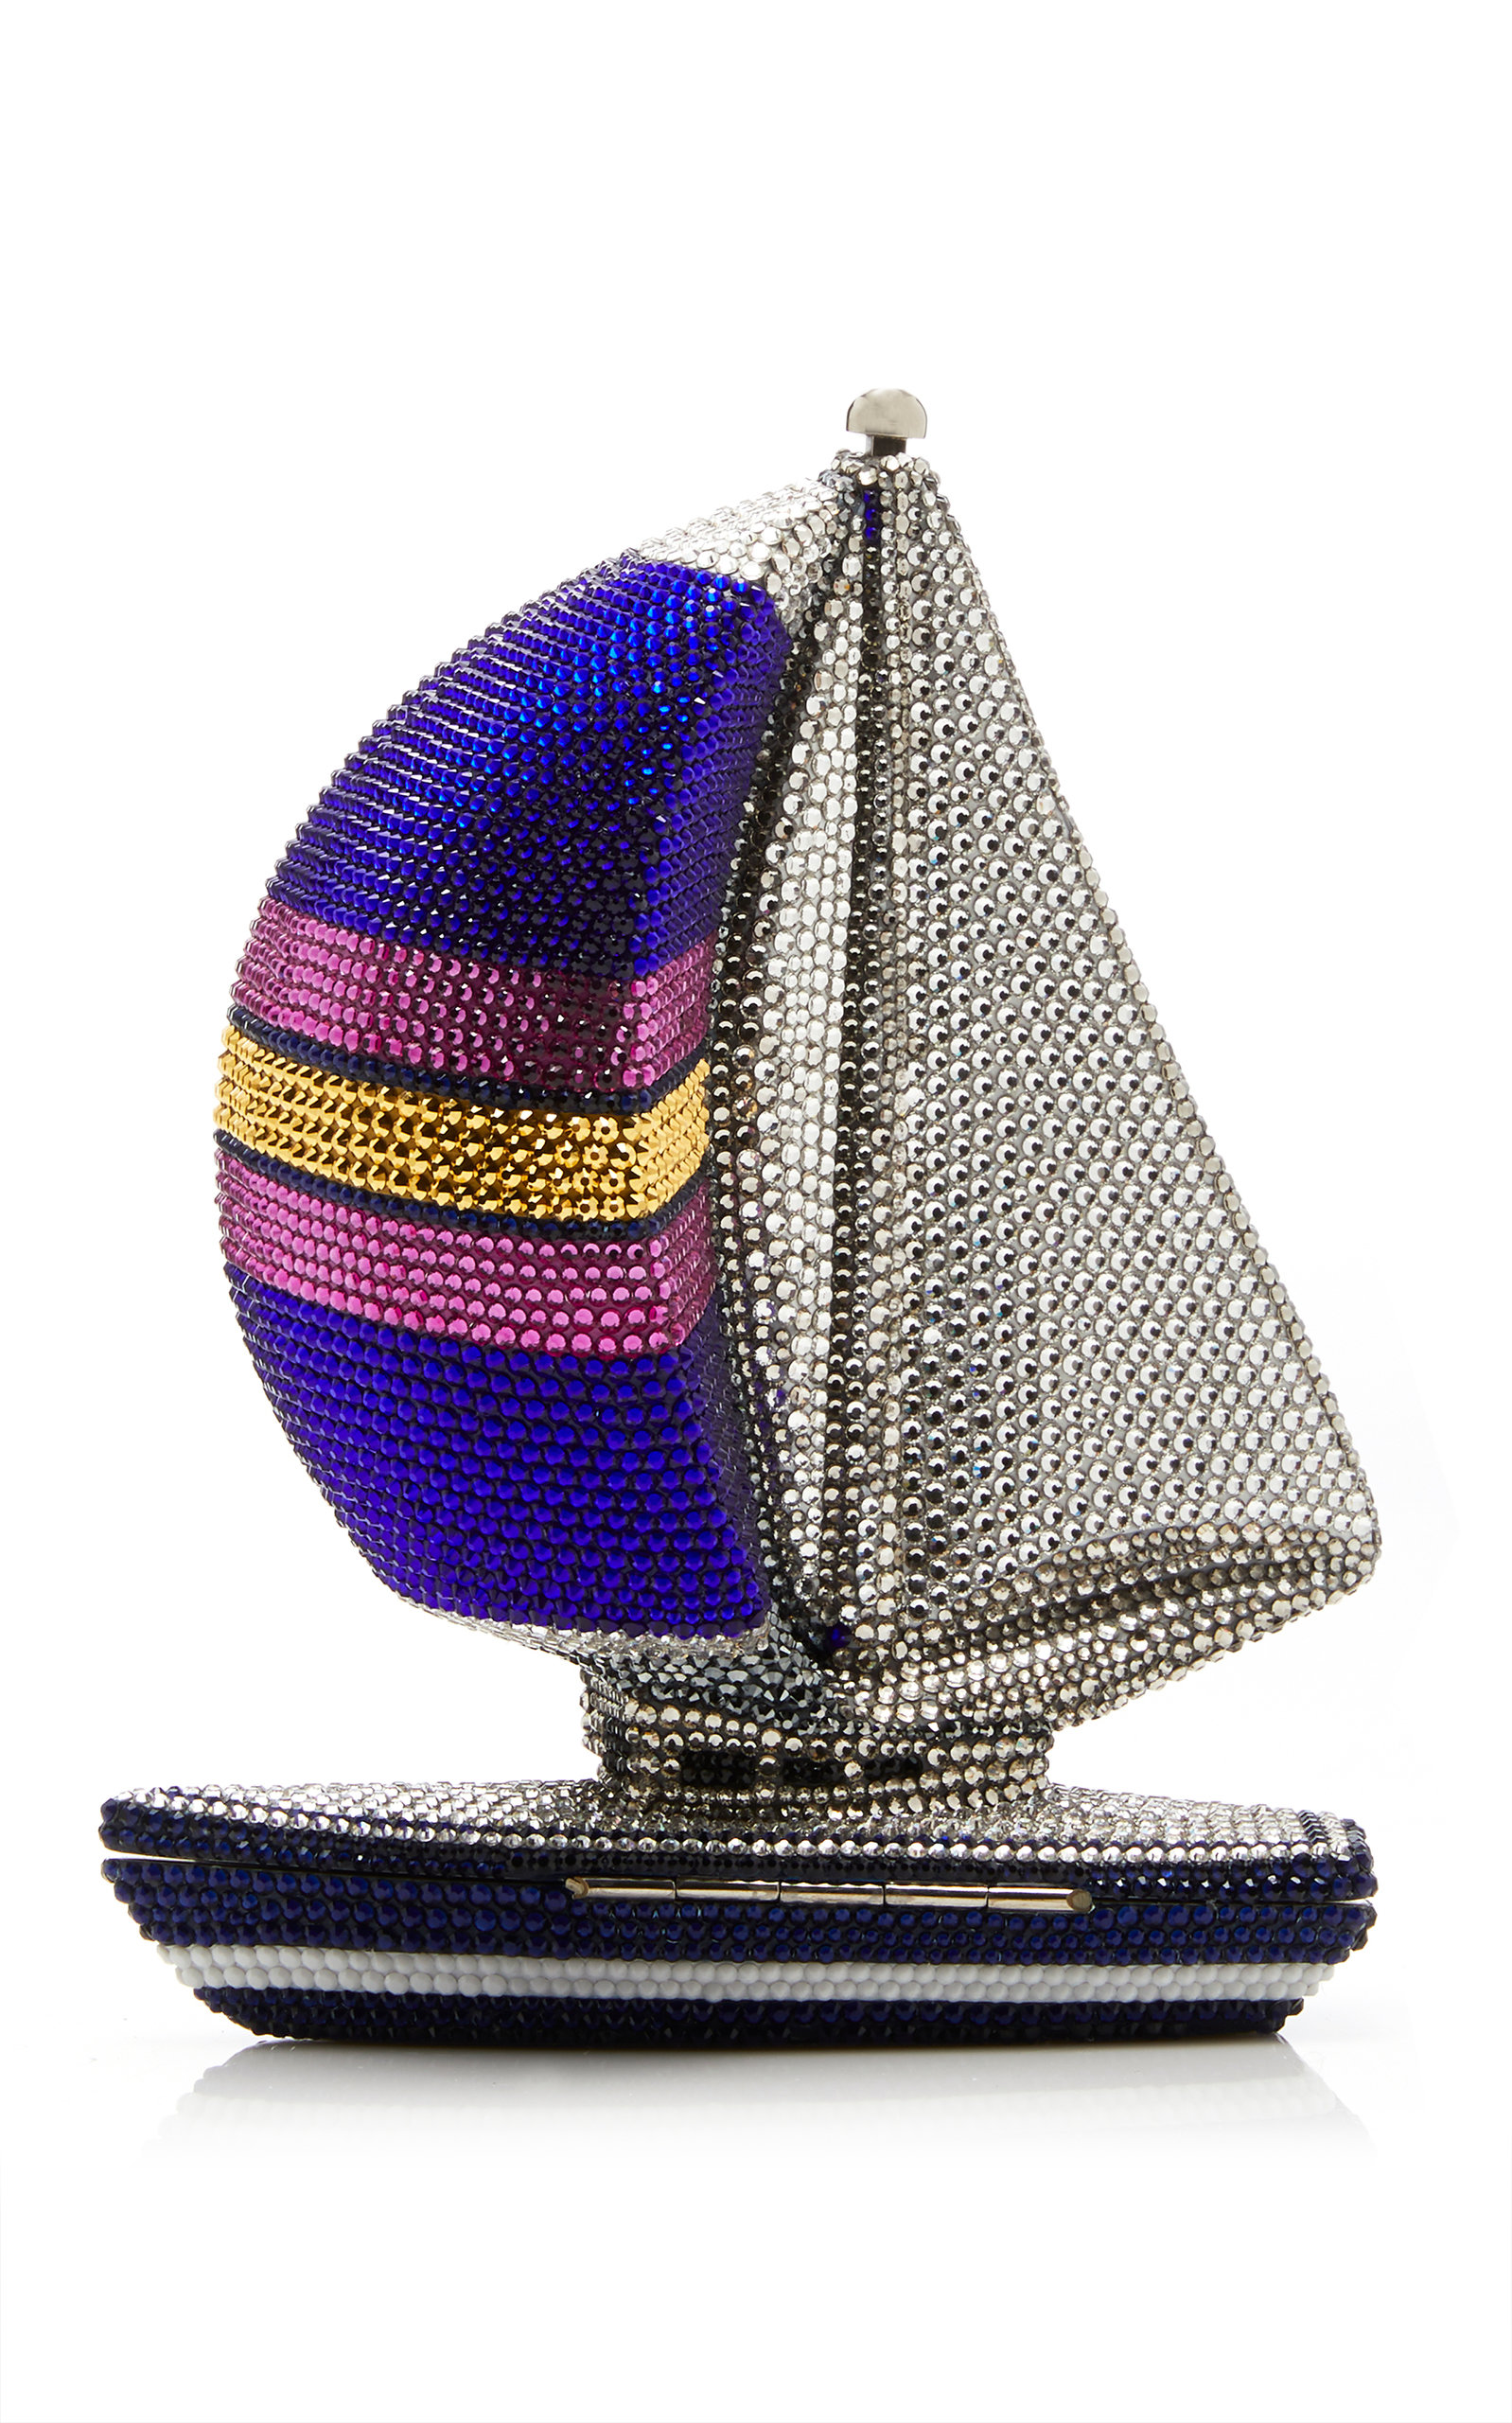 cee6e7f64b Nantucket Sailboat Crystal Clutch by Judith Leiber Couture | Moda ...